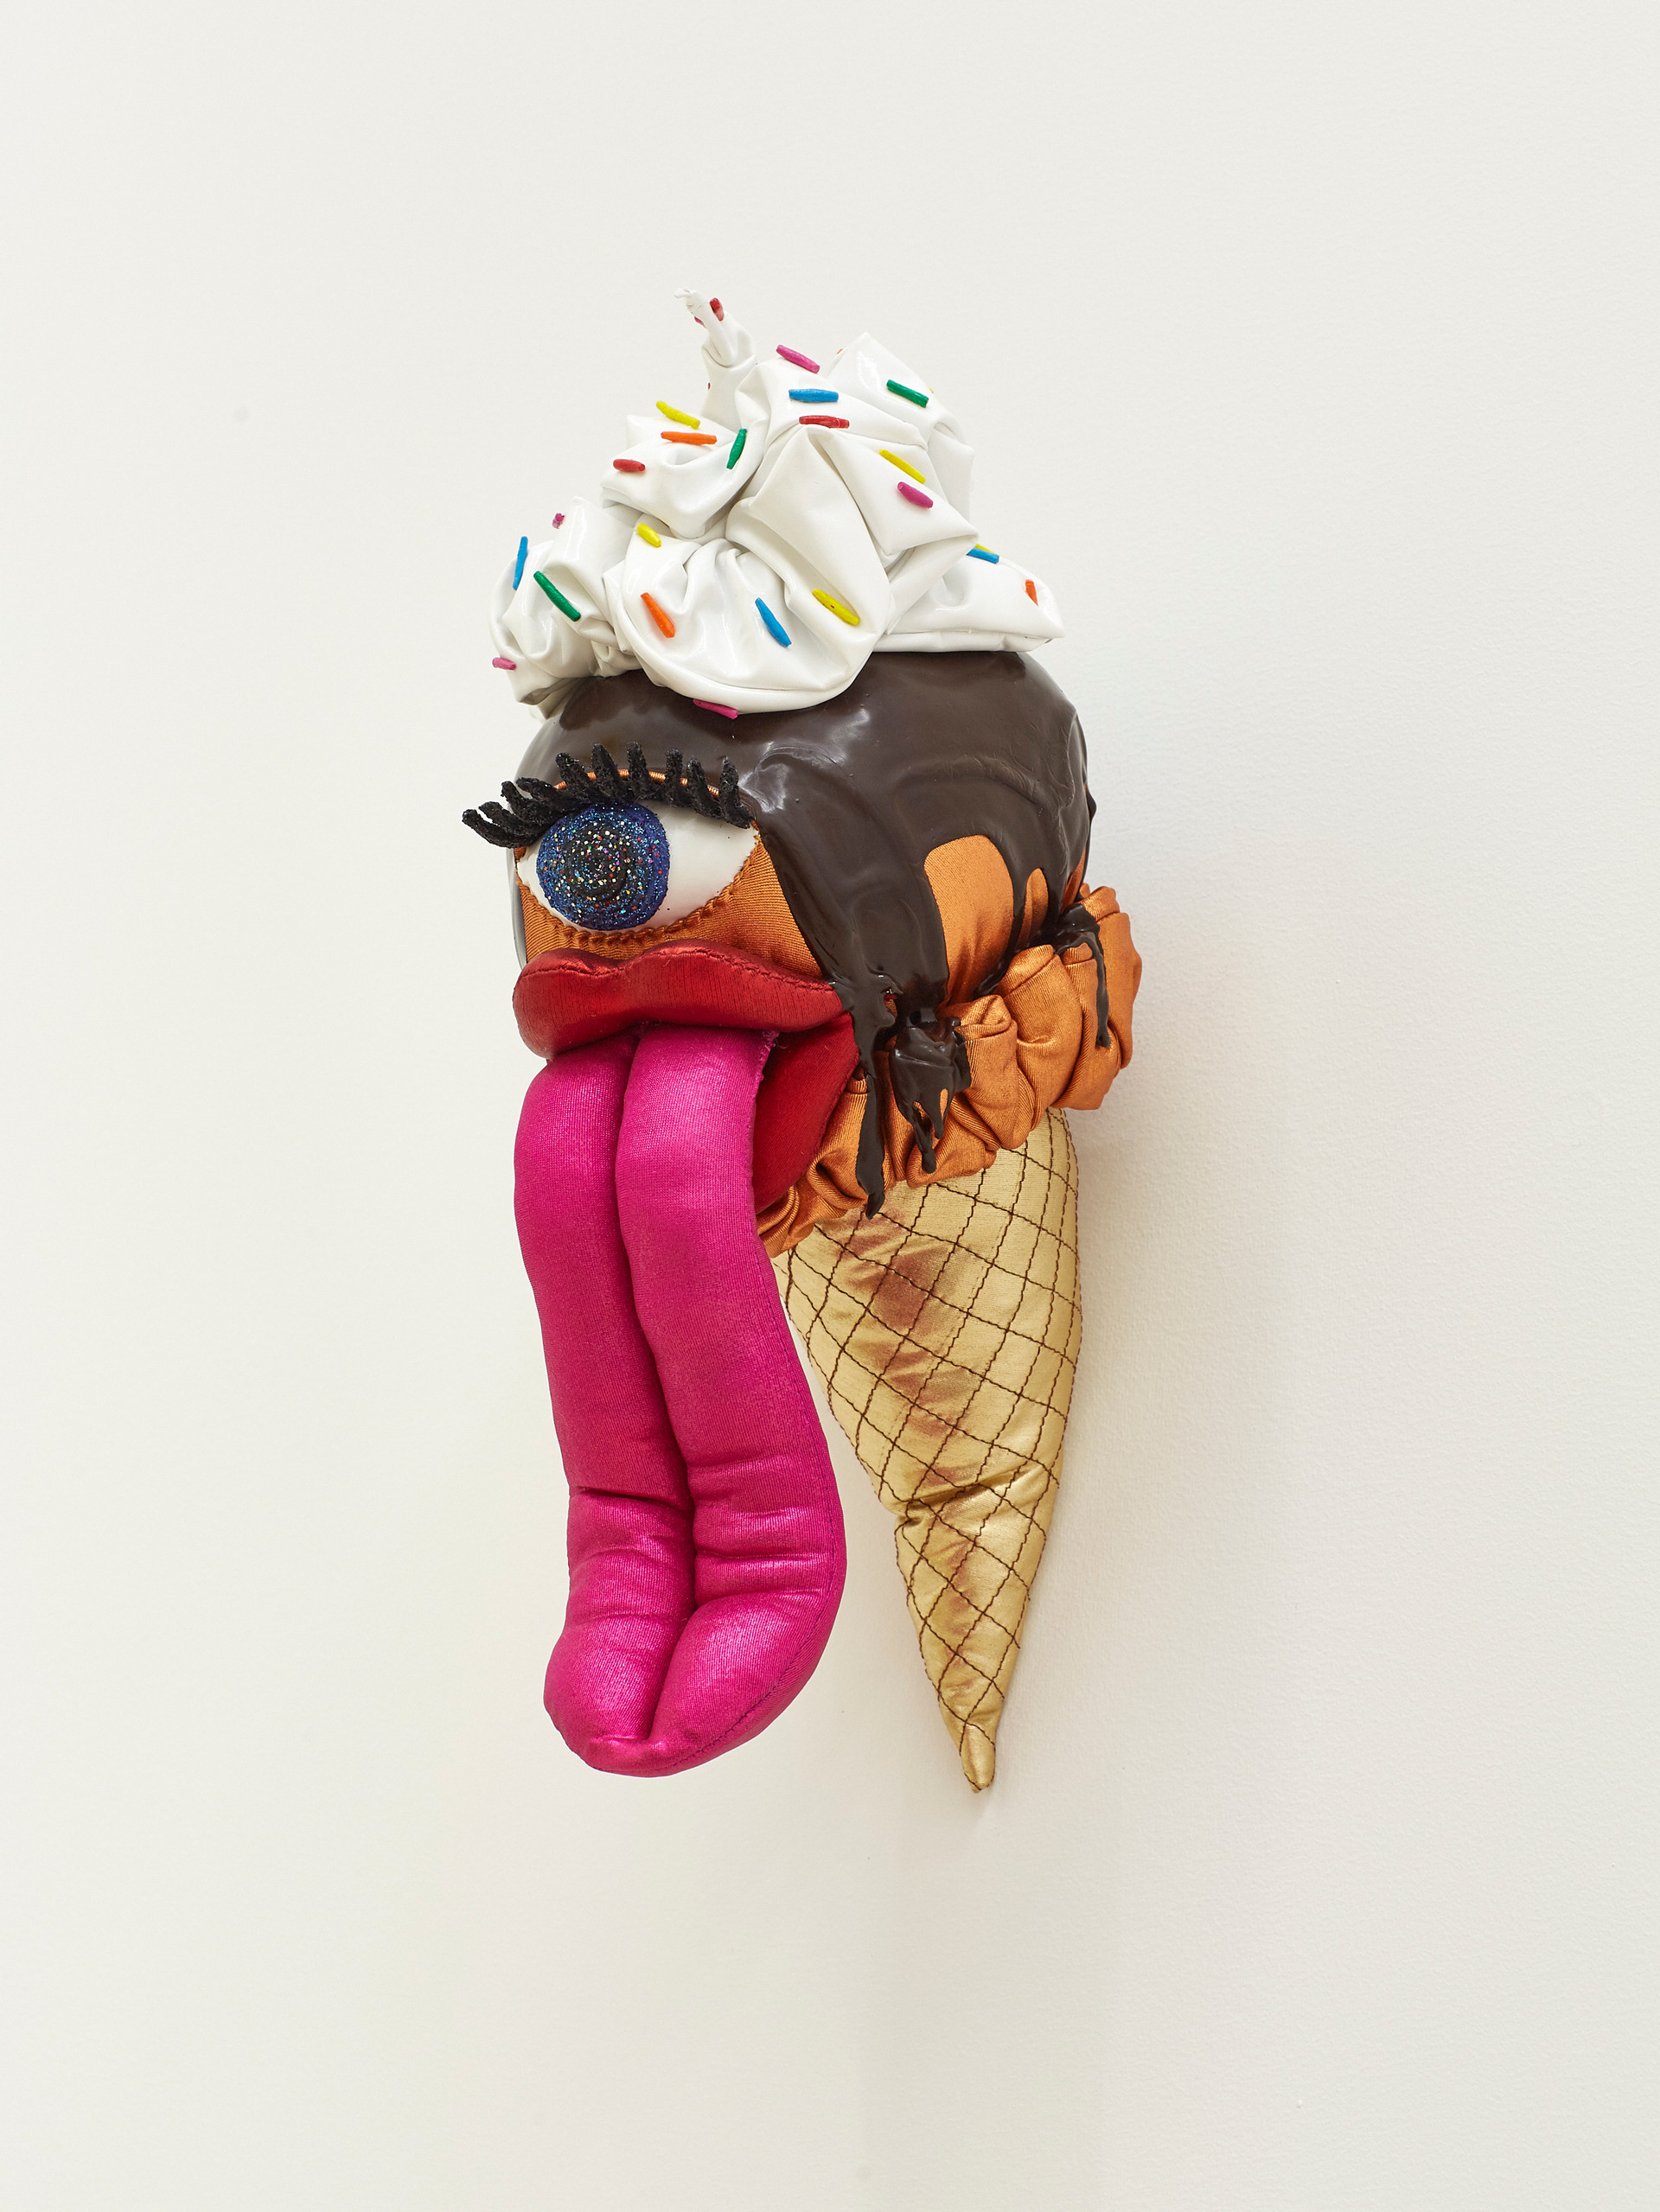 Orange with Chocolate Sauce, Whipped Cream, and Rainbow Sprinkles, 2019 Acrylic, felt, fiberfill, glitter, modeling clay, spandex, string, wire, and vinyl 11 x 5.5 x 9 inches